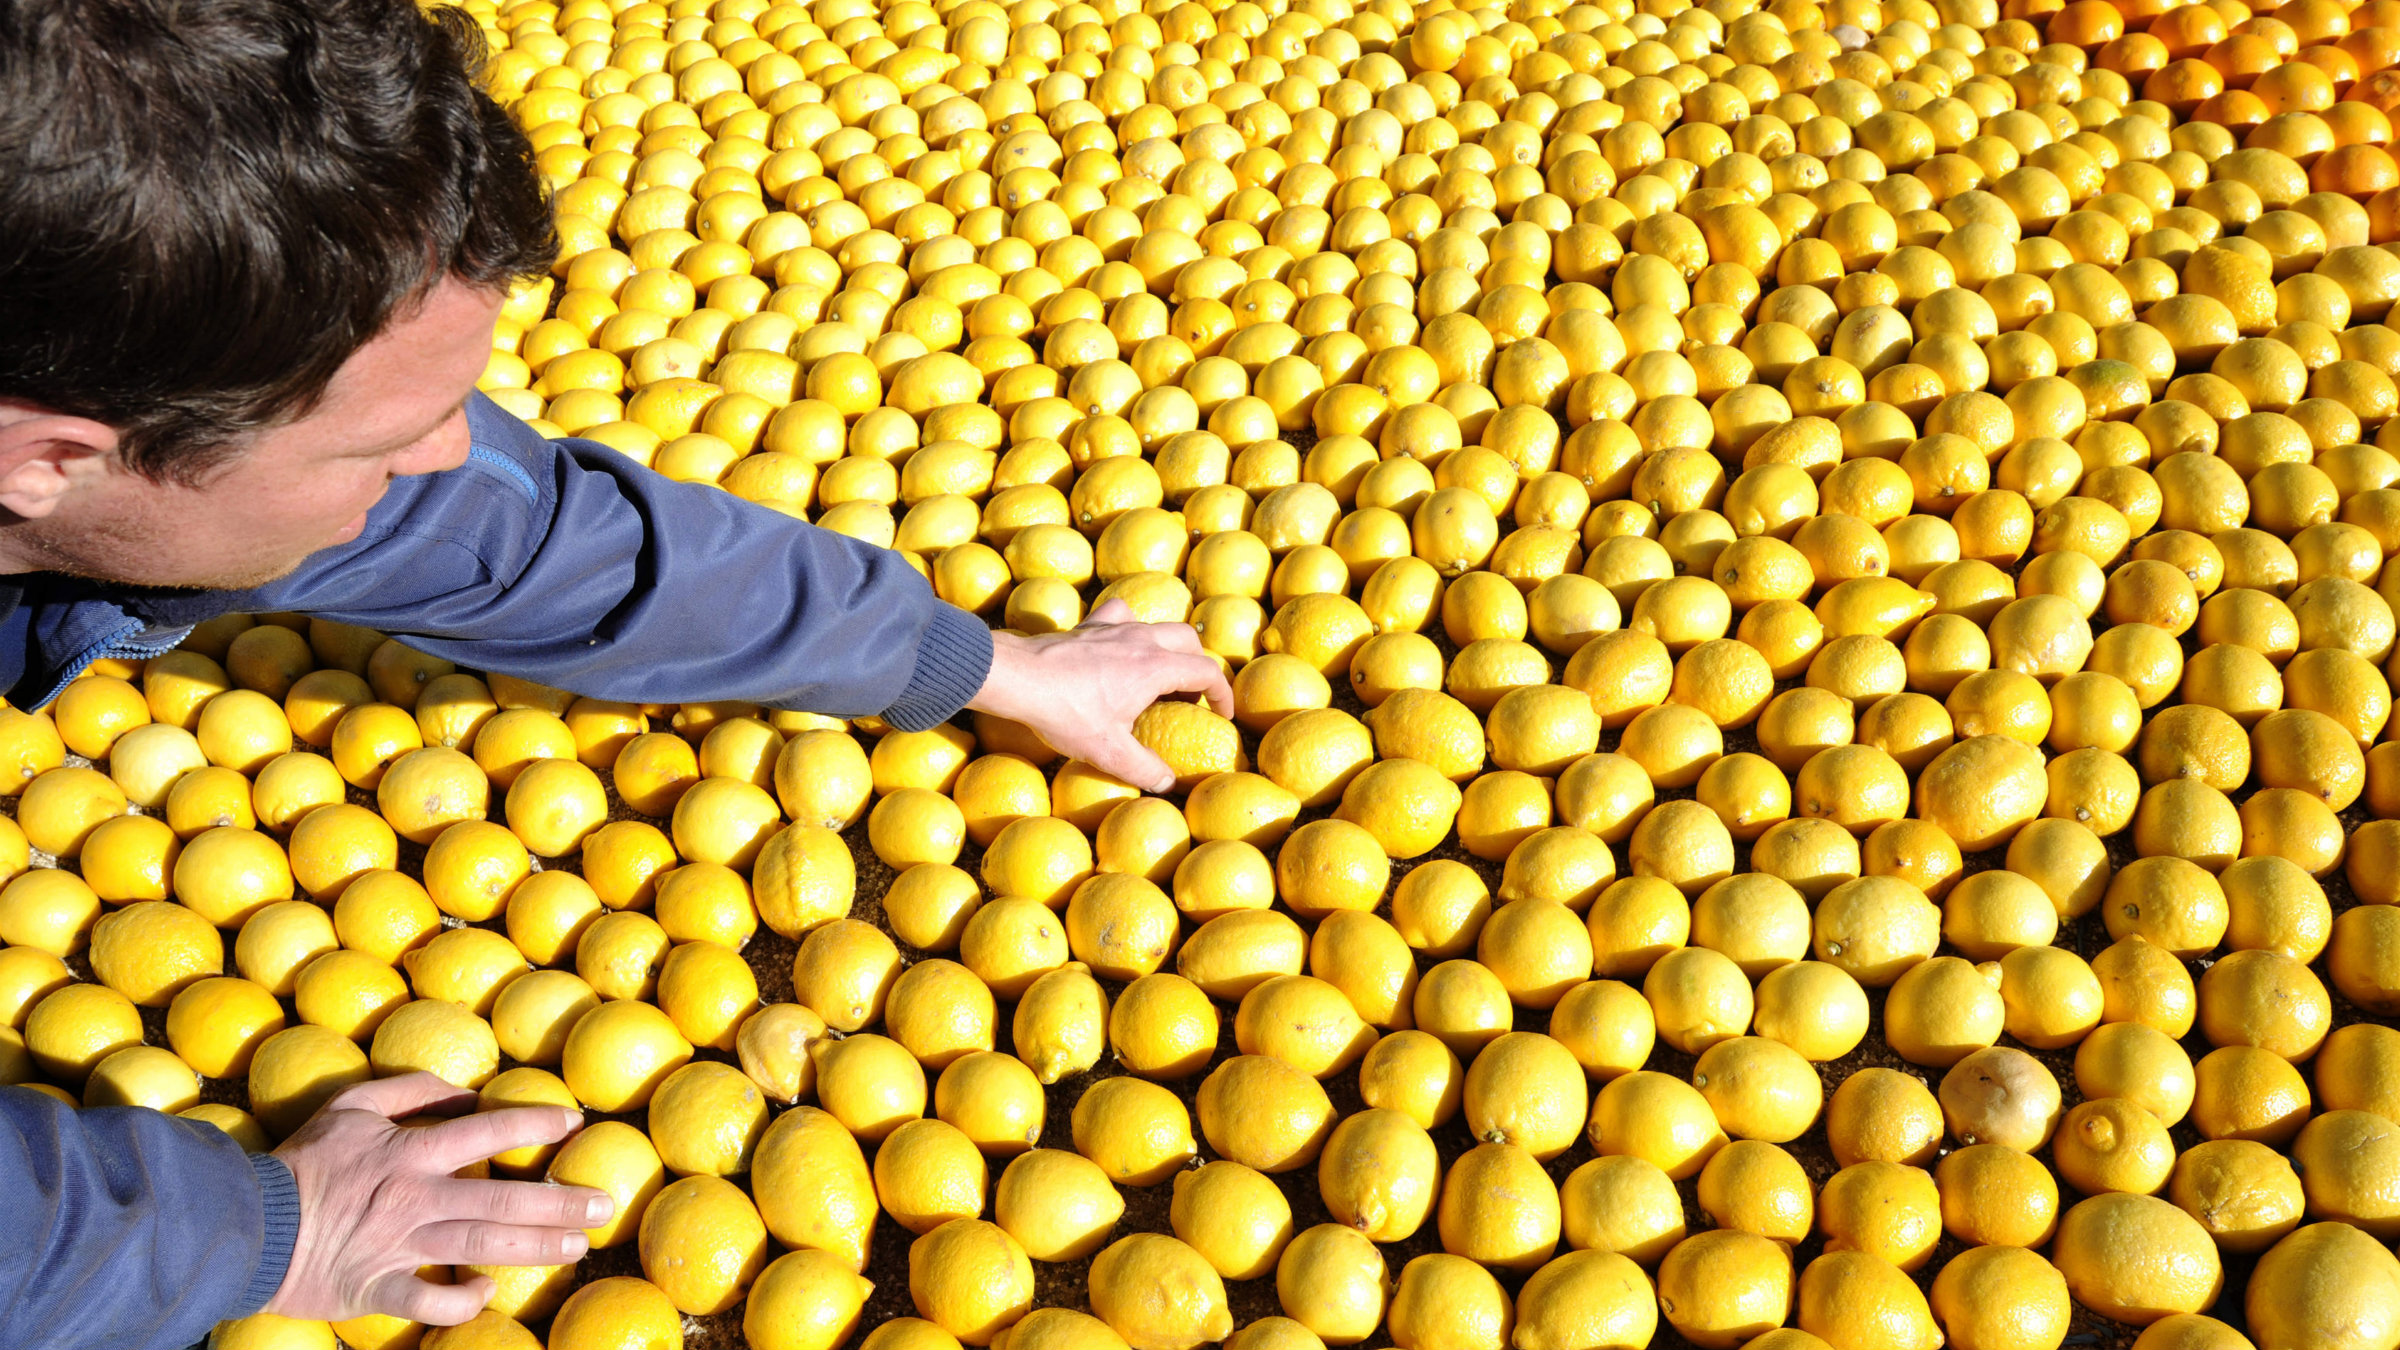 A visitor touches fruit which forms a pattern made with lemons and oranges during the Lemon Festival in Menton, southeastern France.